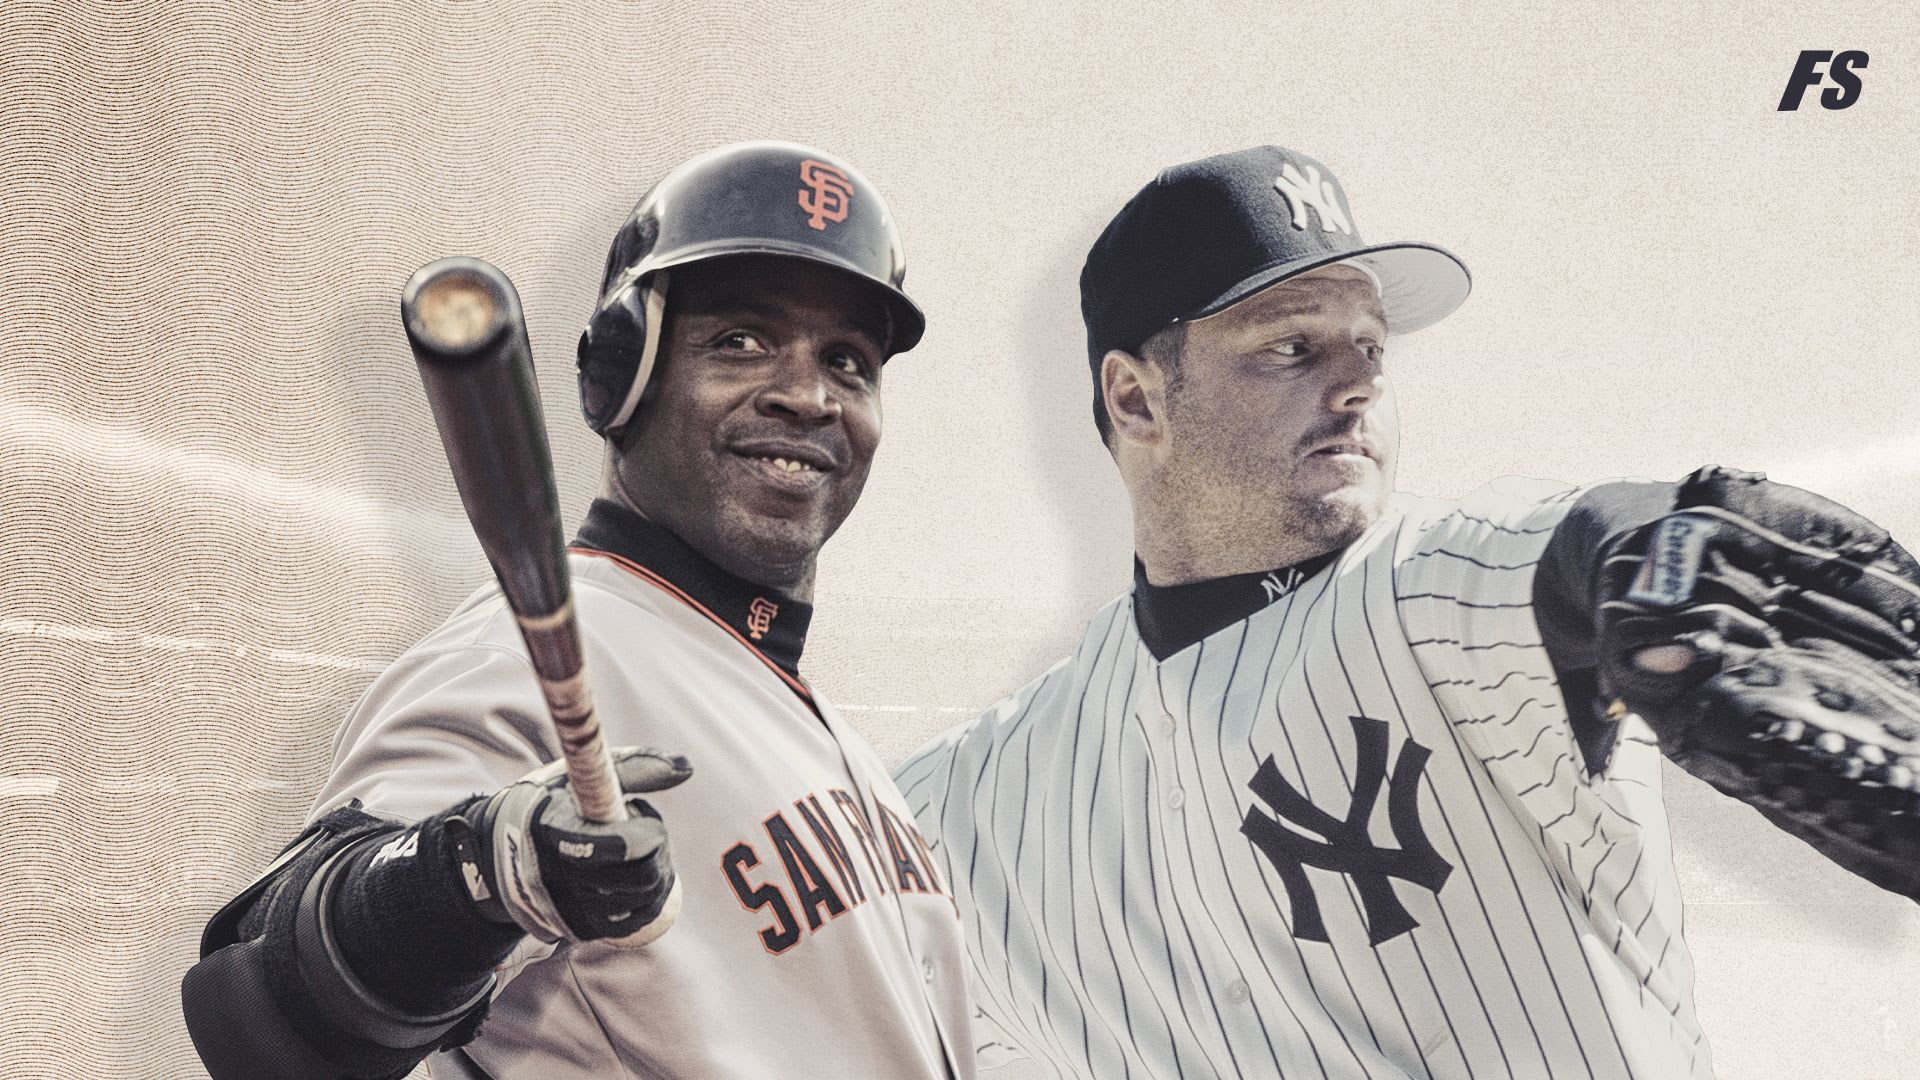 Barry Bonds and Roger Clemens, 2021 mock Baseball Hall of Fame